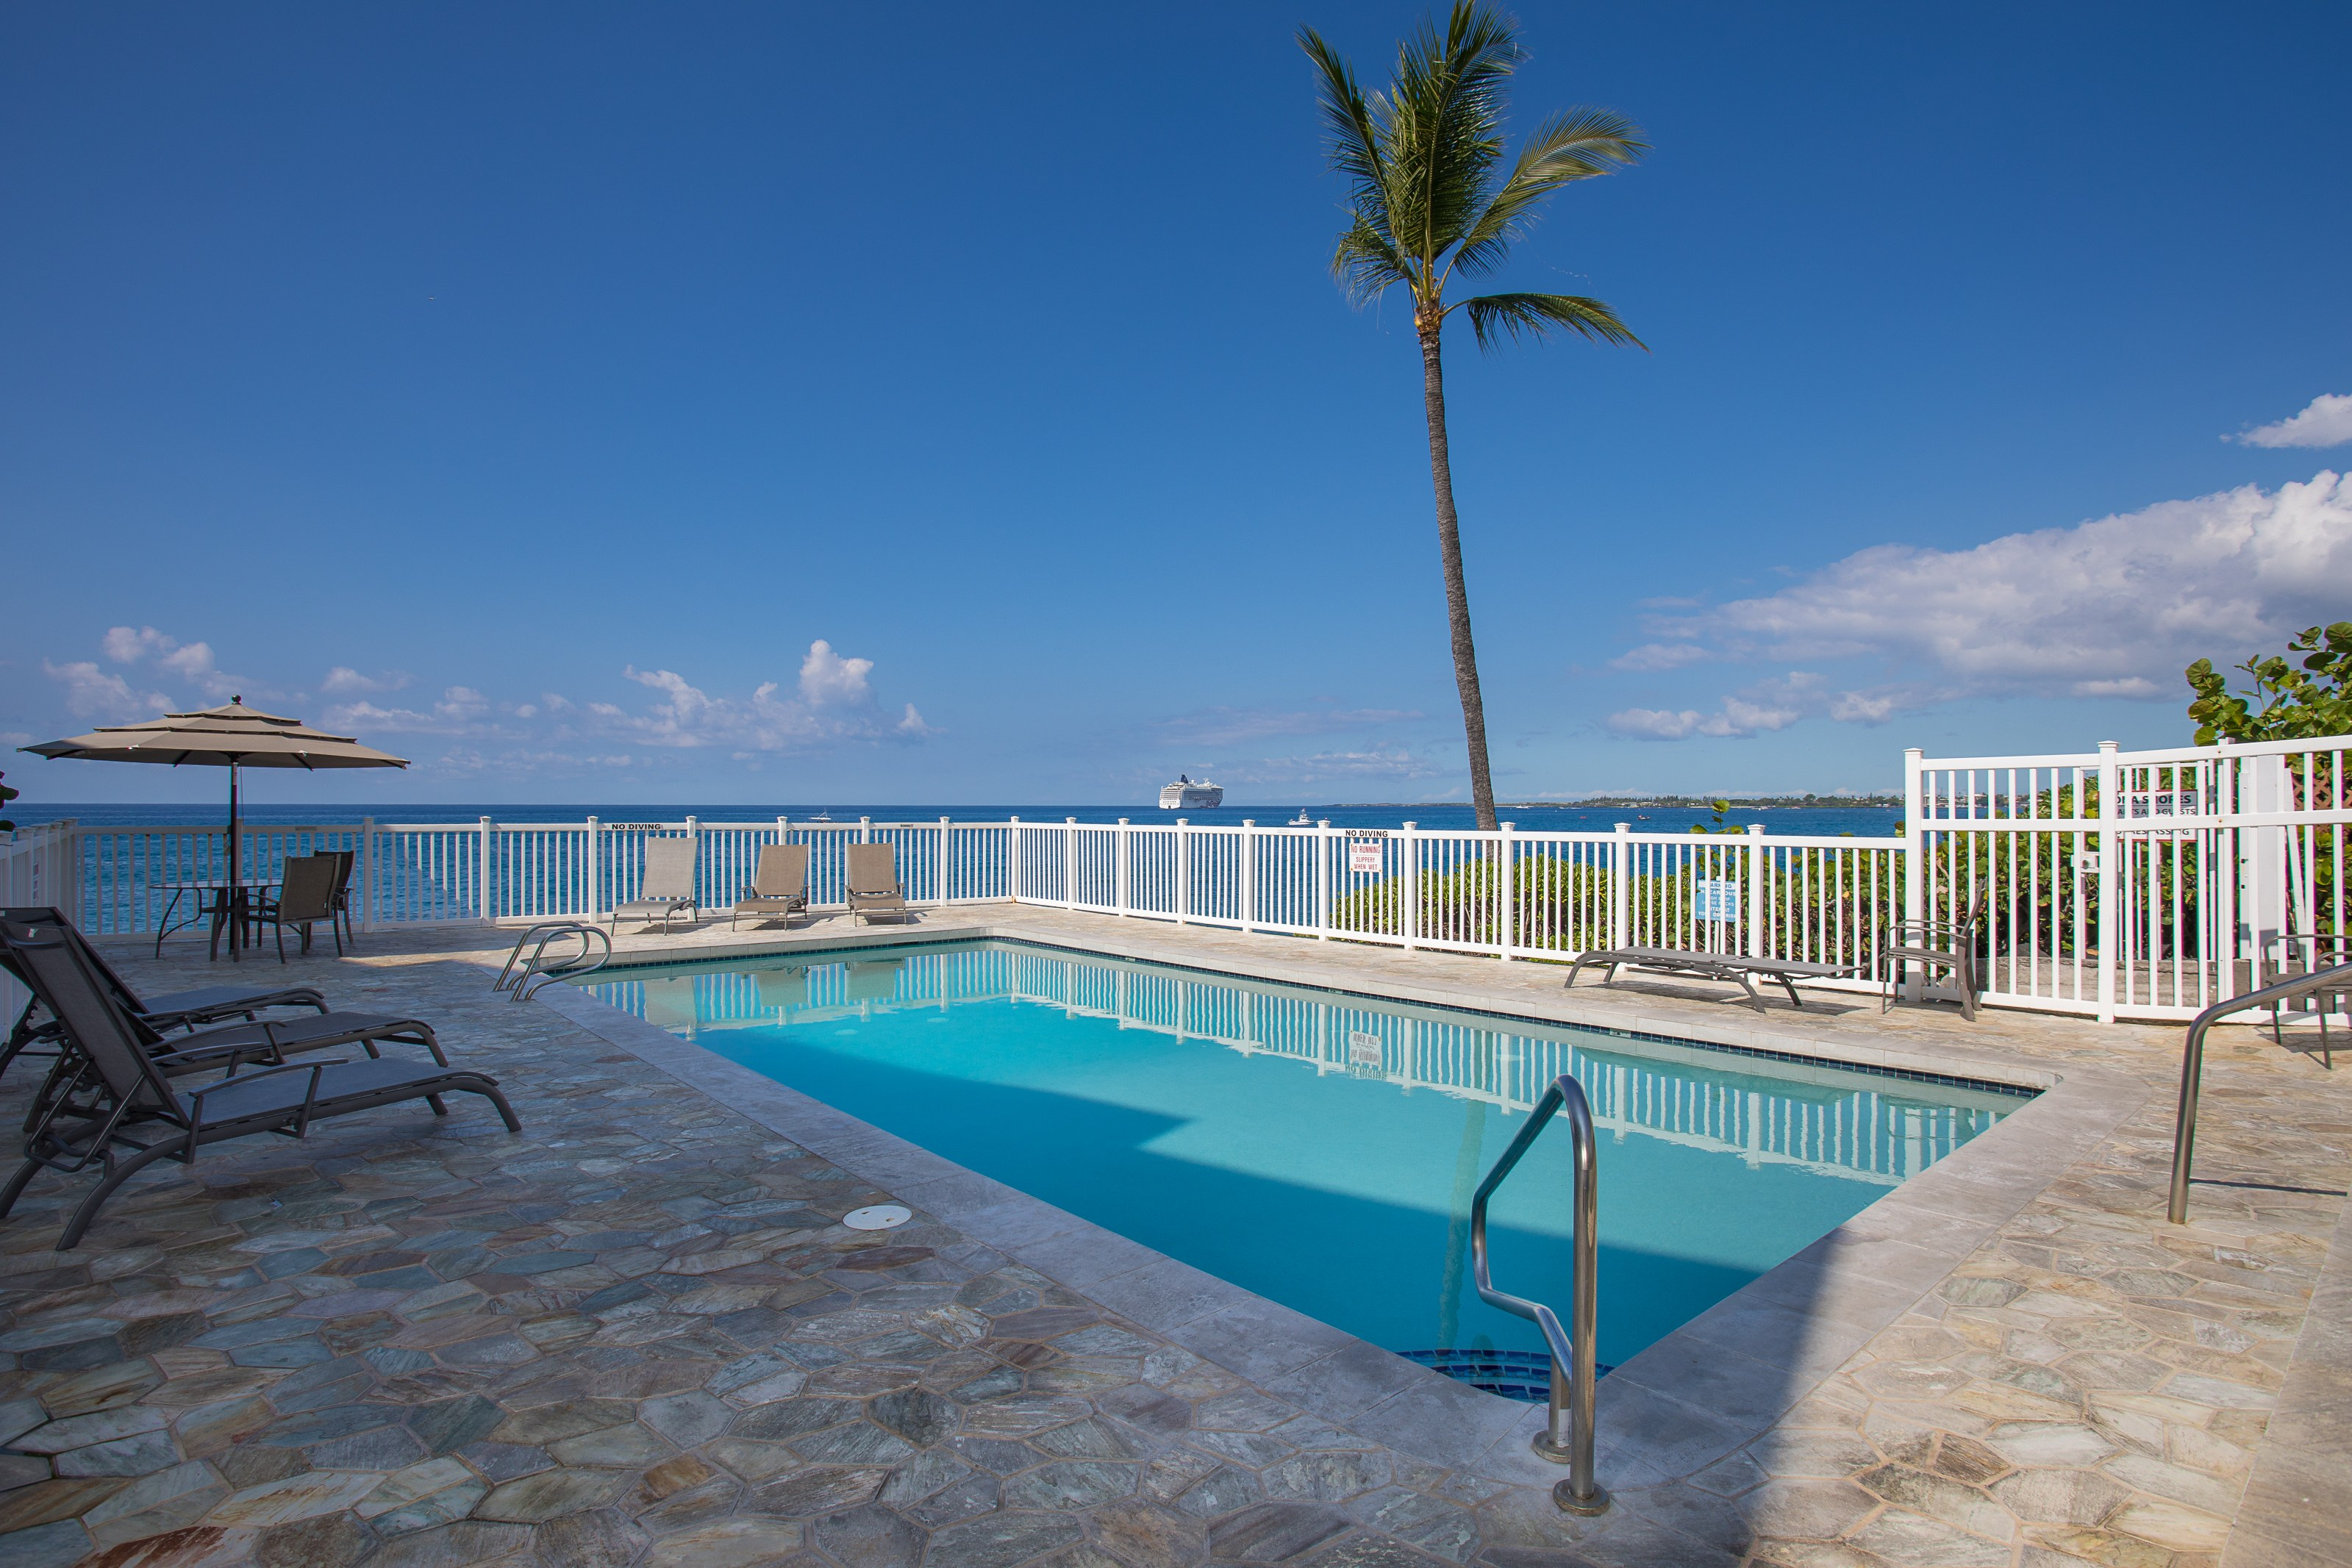 Pool on the oceanfront.